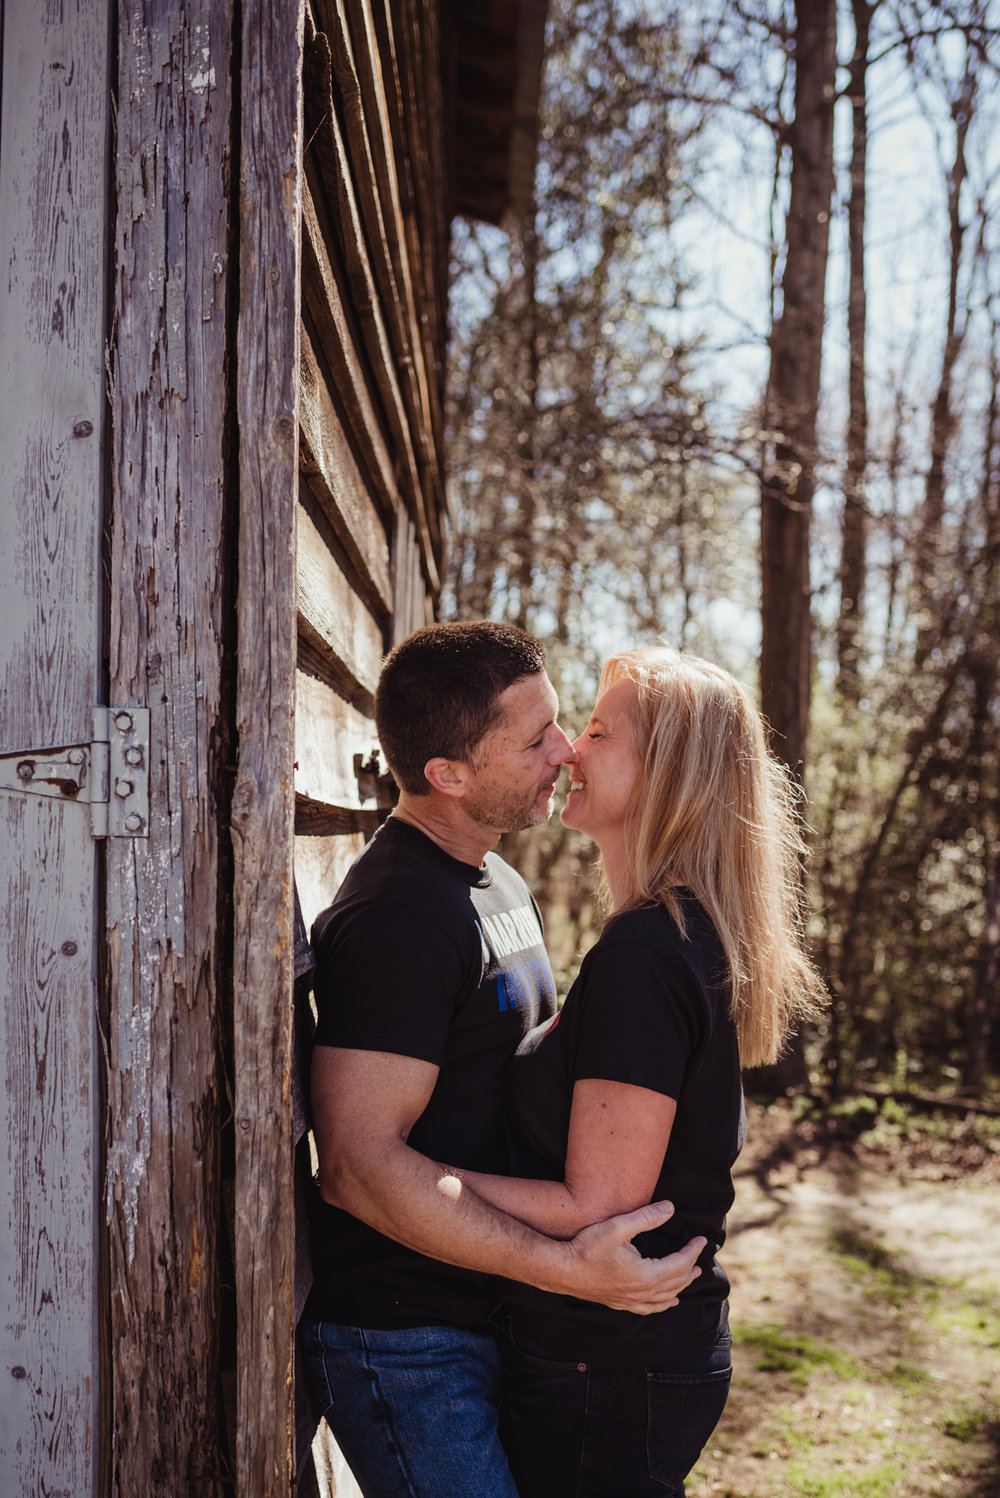 The couple hold each other on a barn in the morning light during their engagement session with Rose Trail Images in Wake Forest, NC.